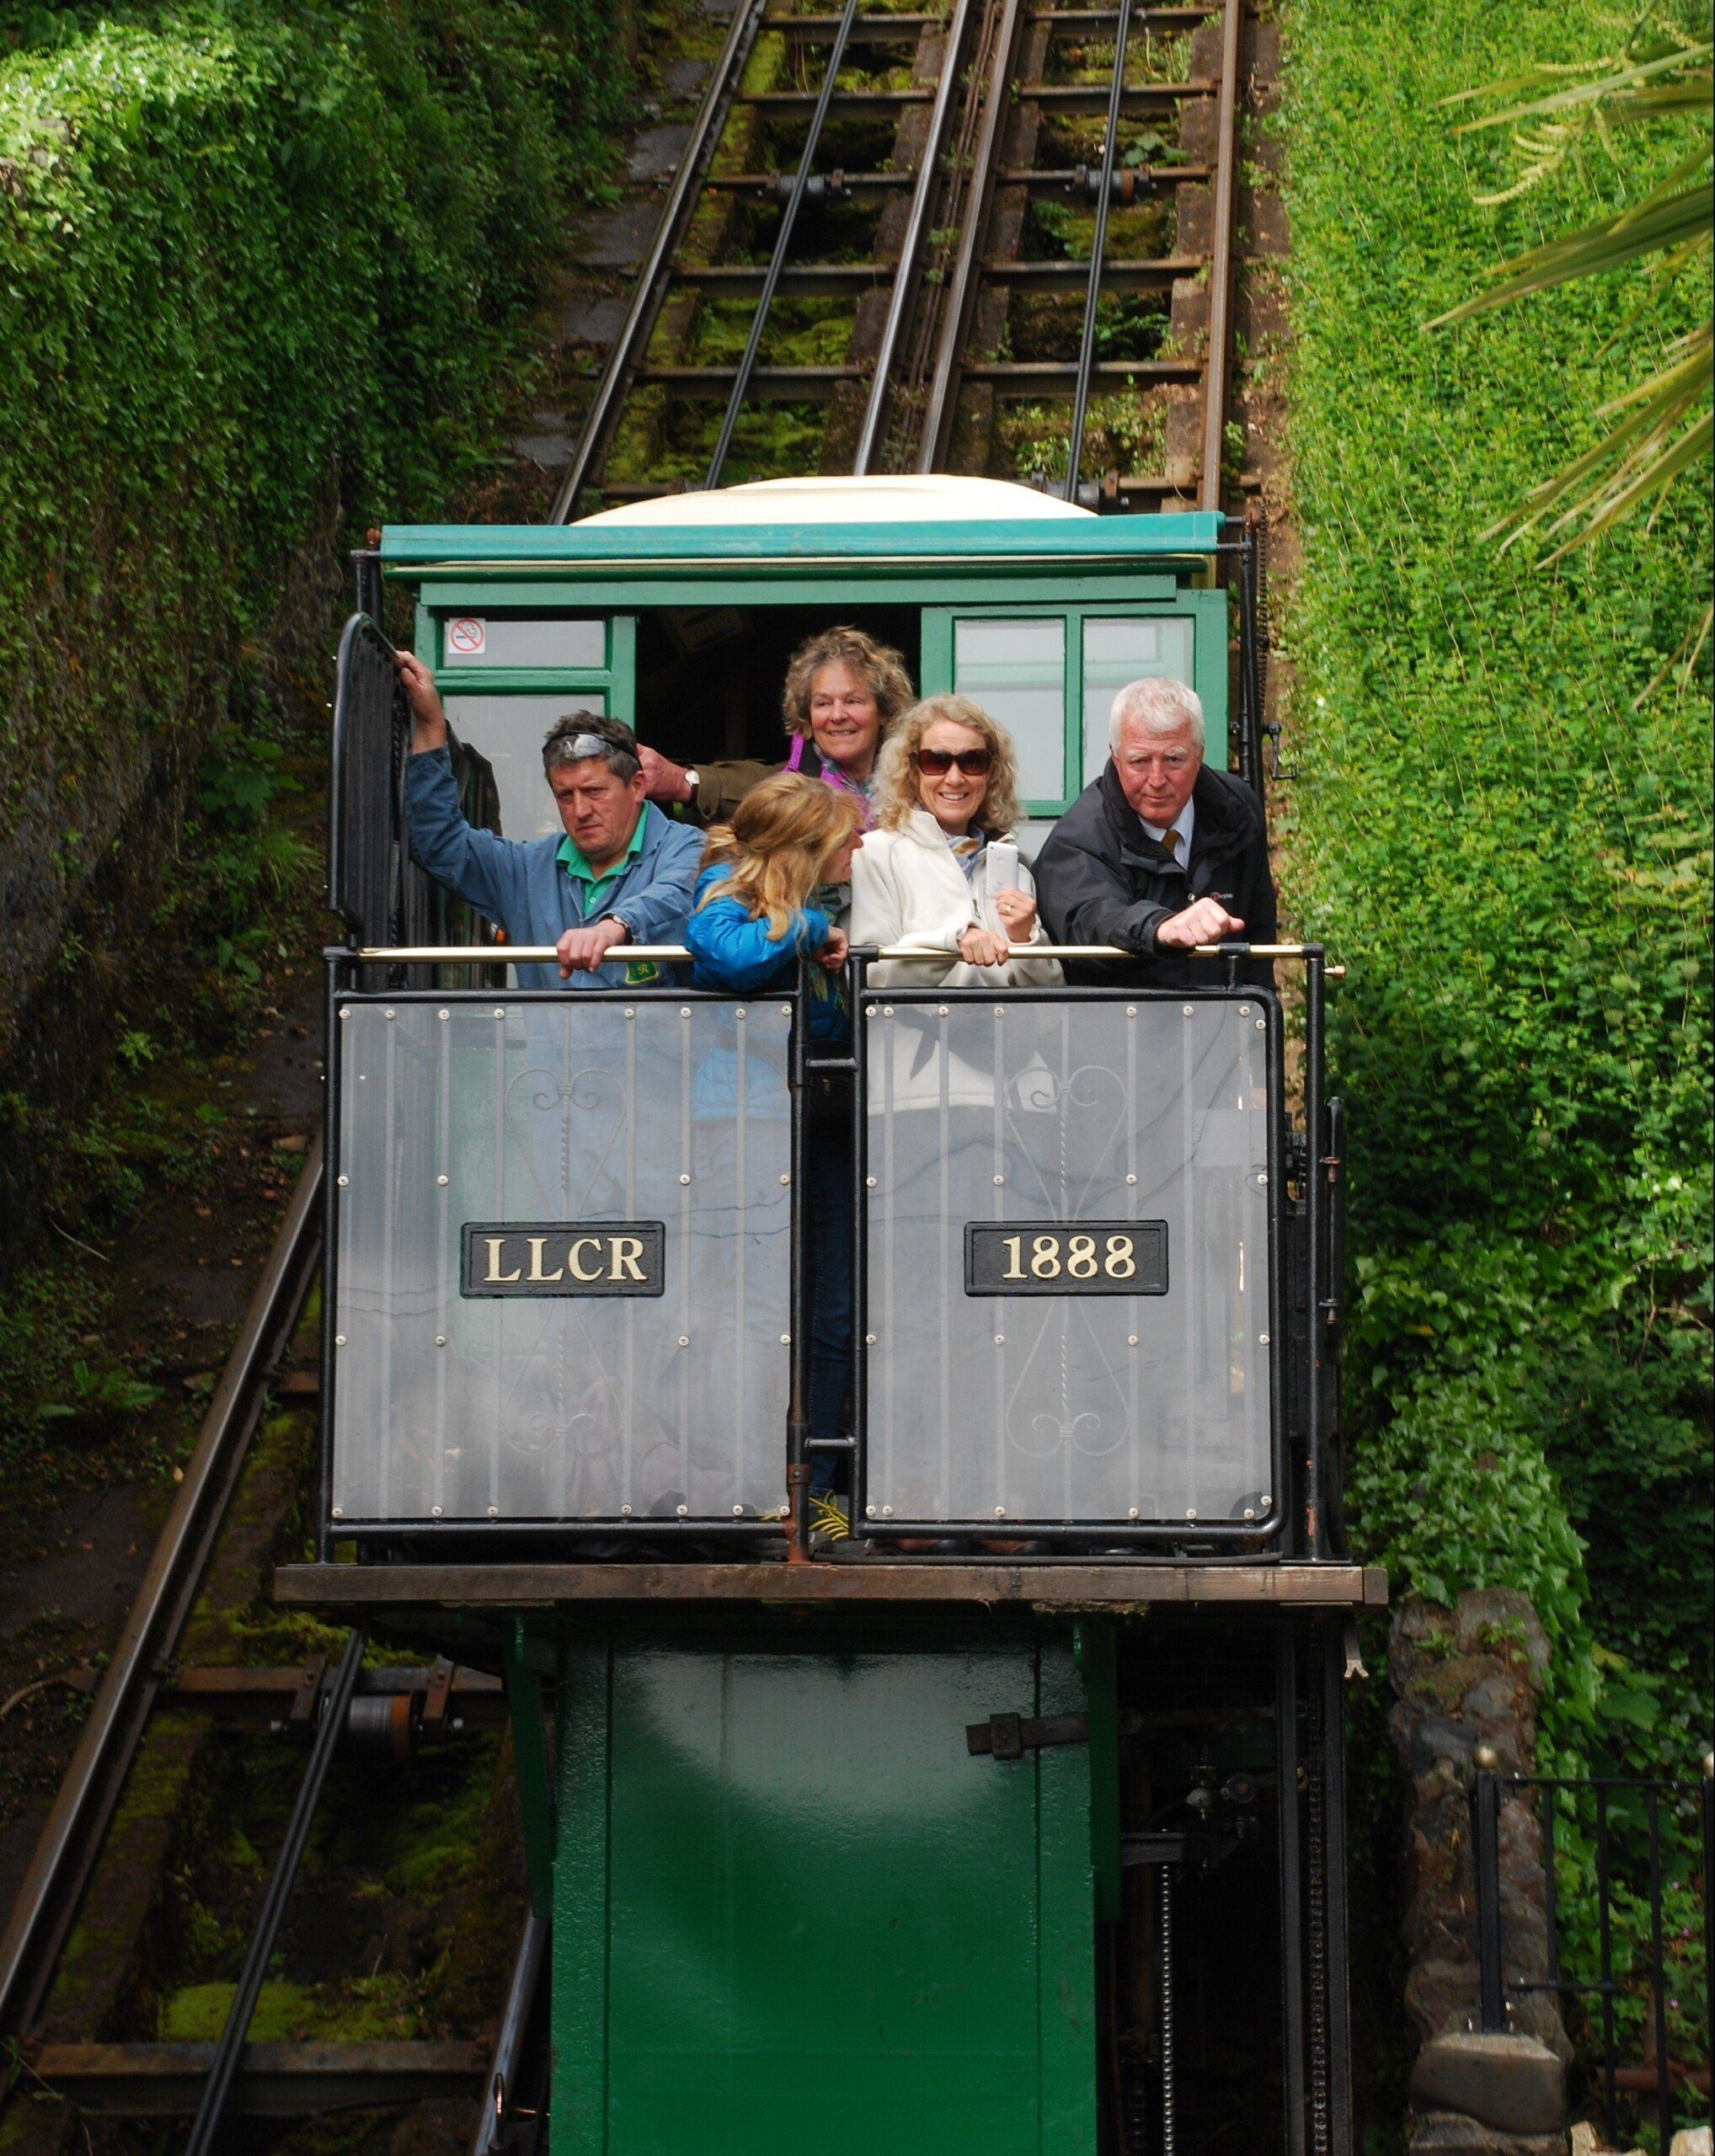 Taking passengers between Lynton and Lynmouth on the Cliff Railway